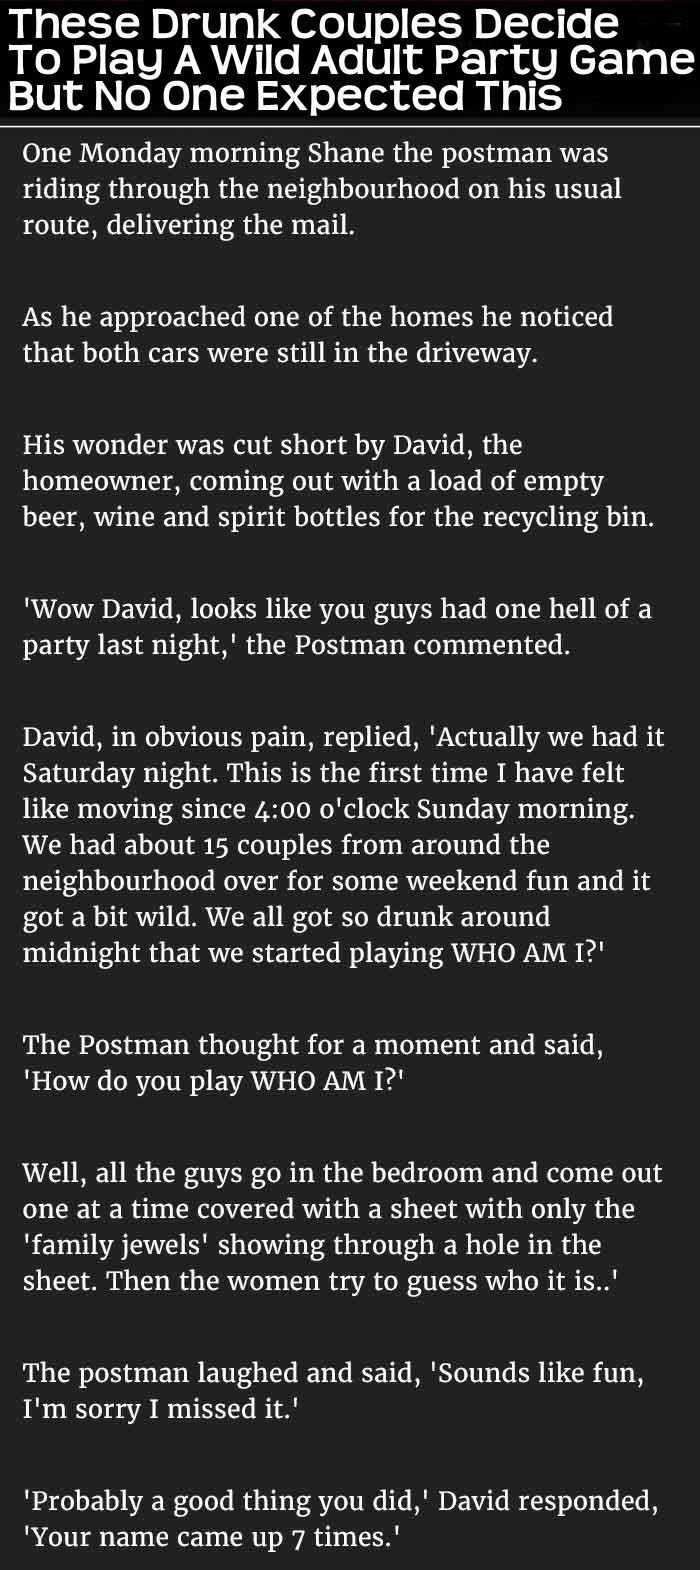 These Couples Decide To Play A Wild Adult Party Game But Never Expected This funny jokes story lol funny quote funny quotes funny sayings joke humor stories dirty jokes funny jokes